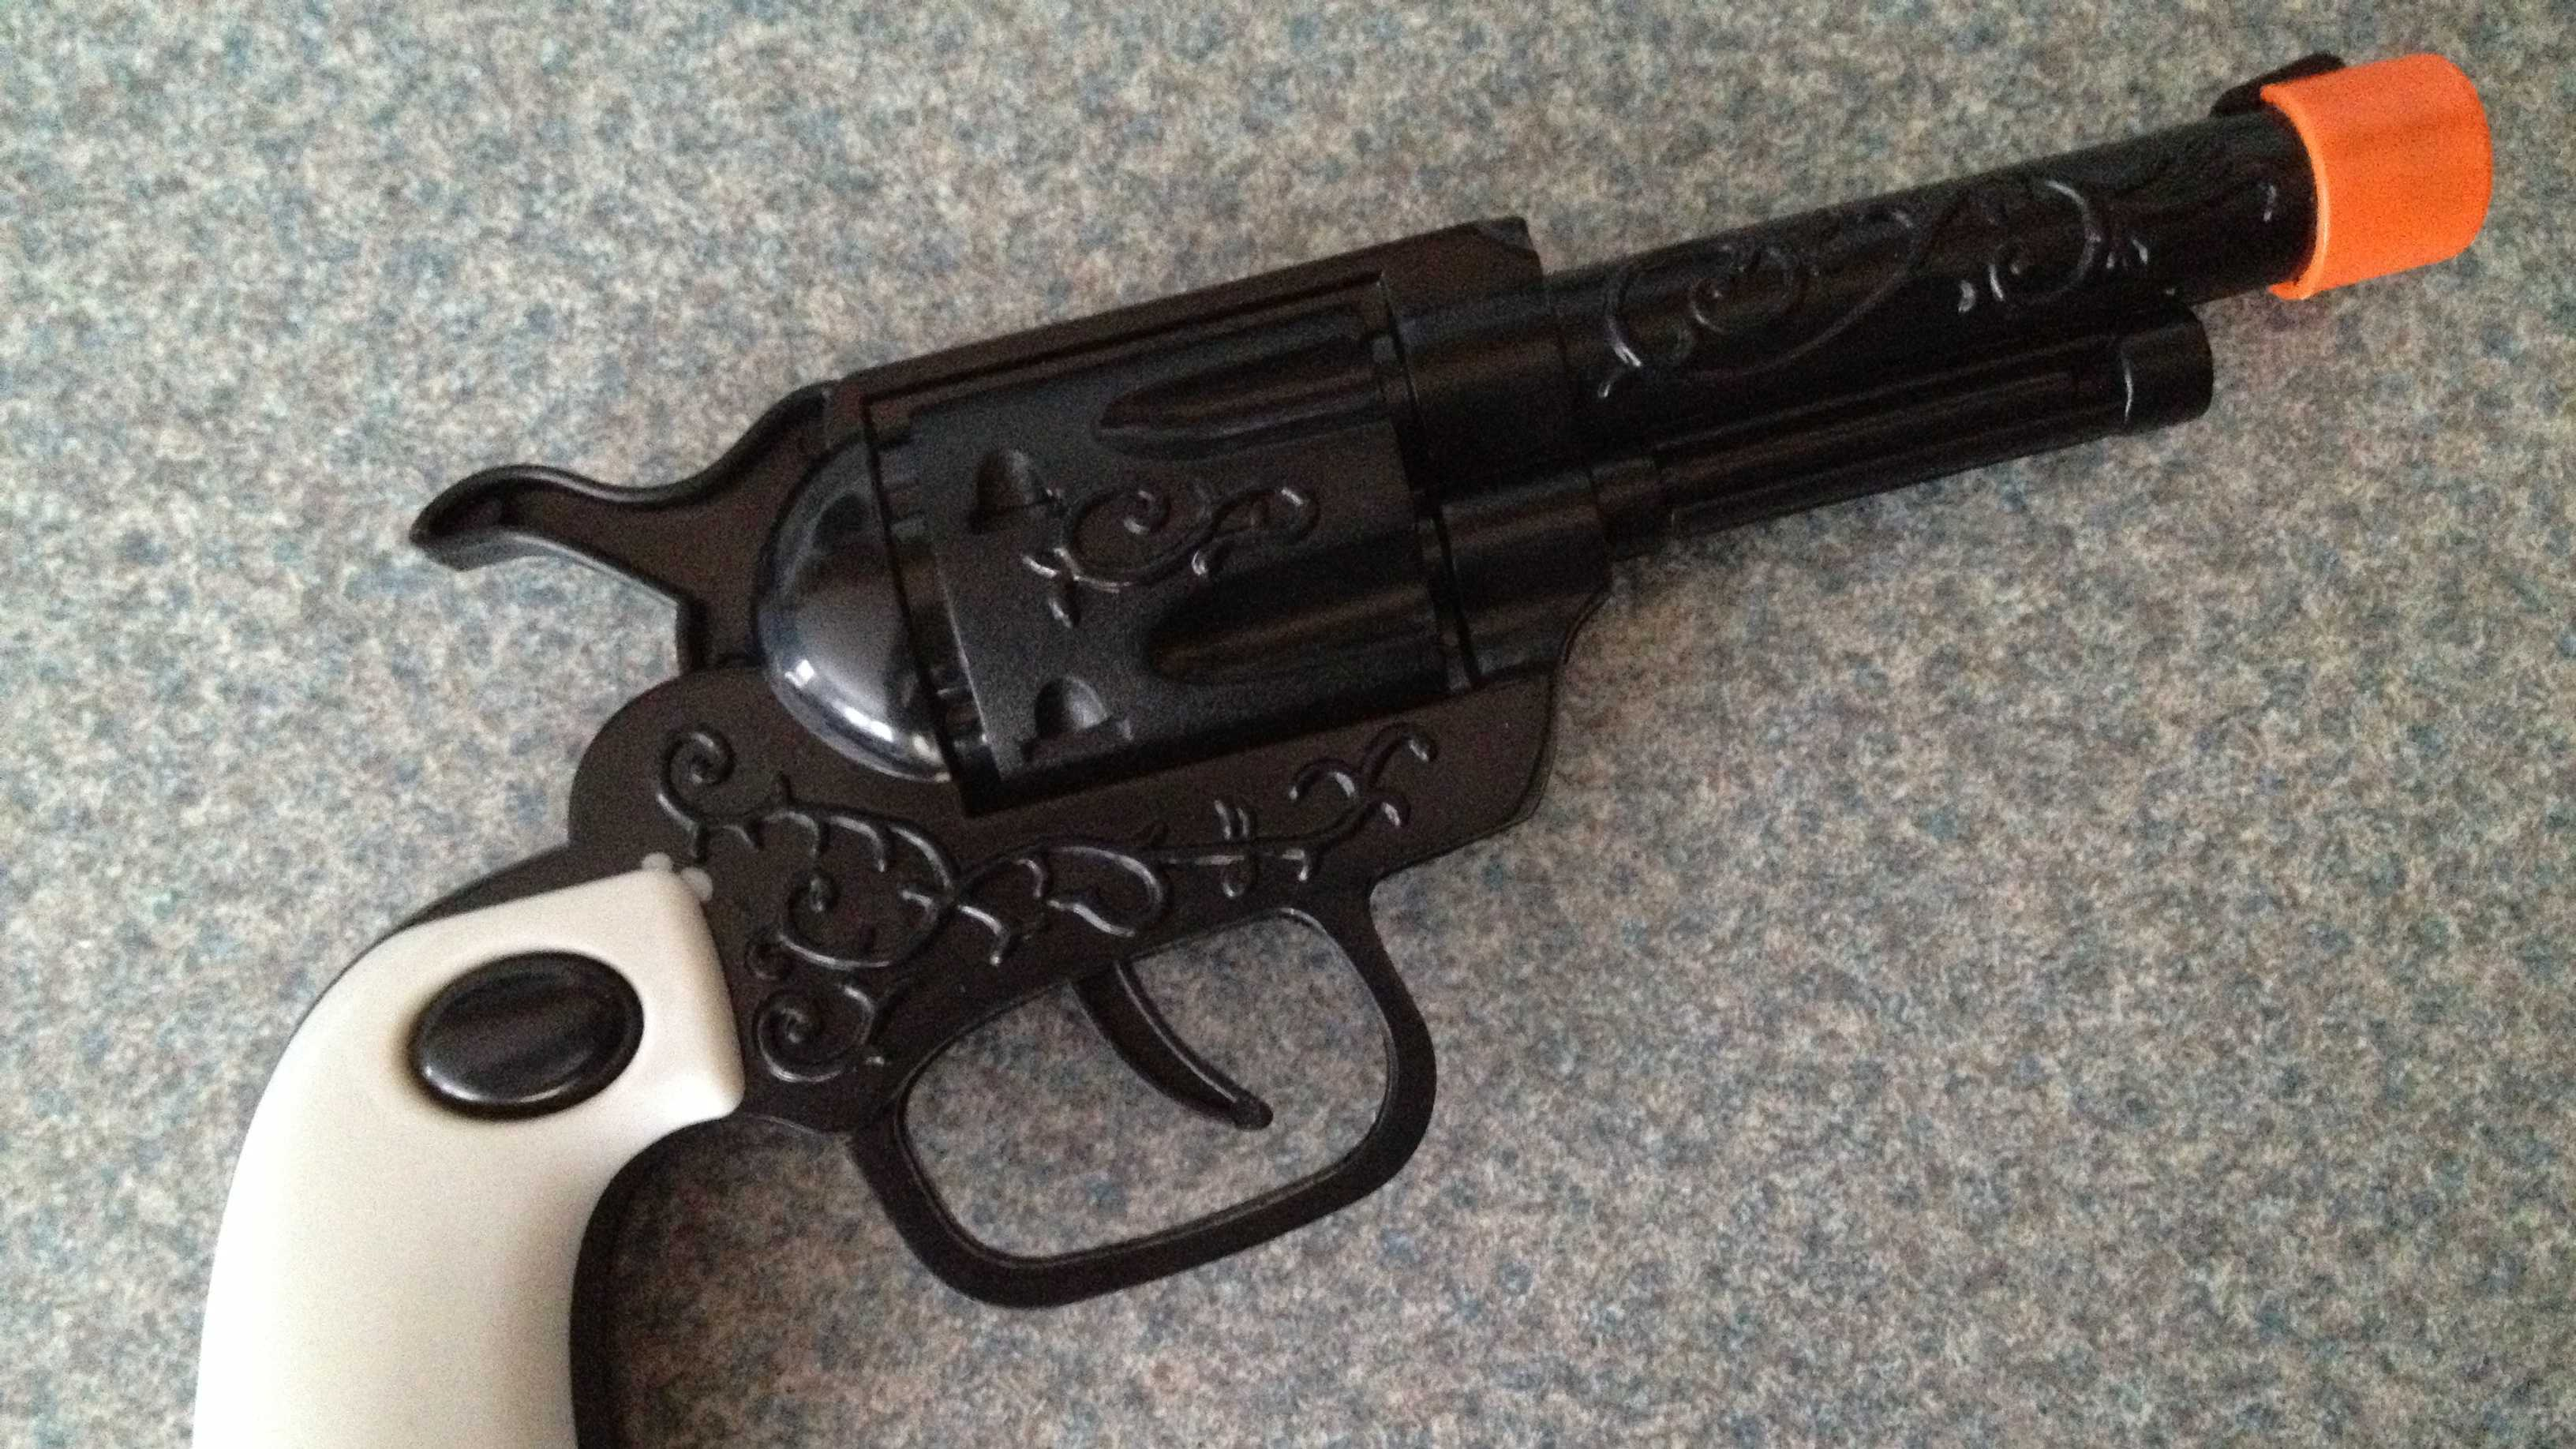 The toy gun that Christina Krueger Stone's 5-year-old son brought to school.